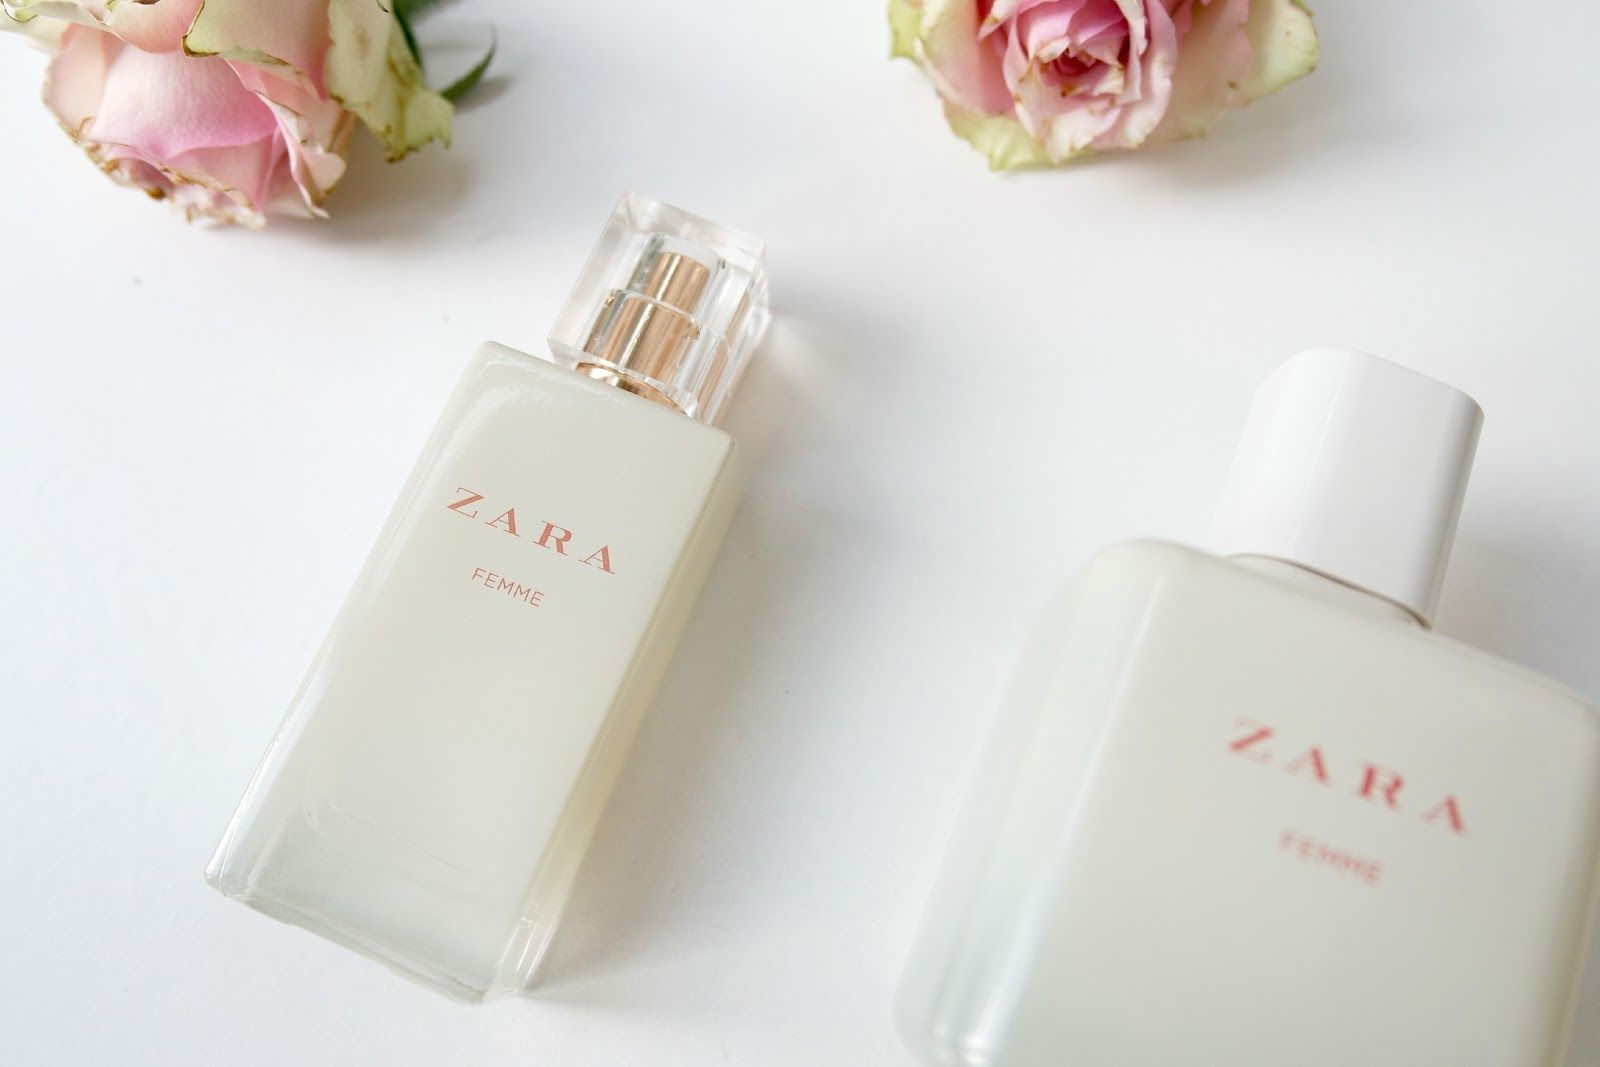 Zara Femme Perfume. Got given this for my birthday. perfect for everyday during winter.